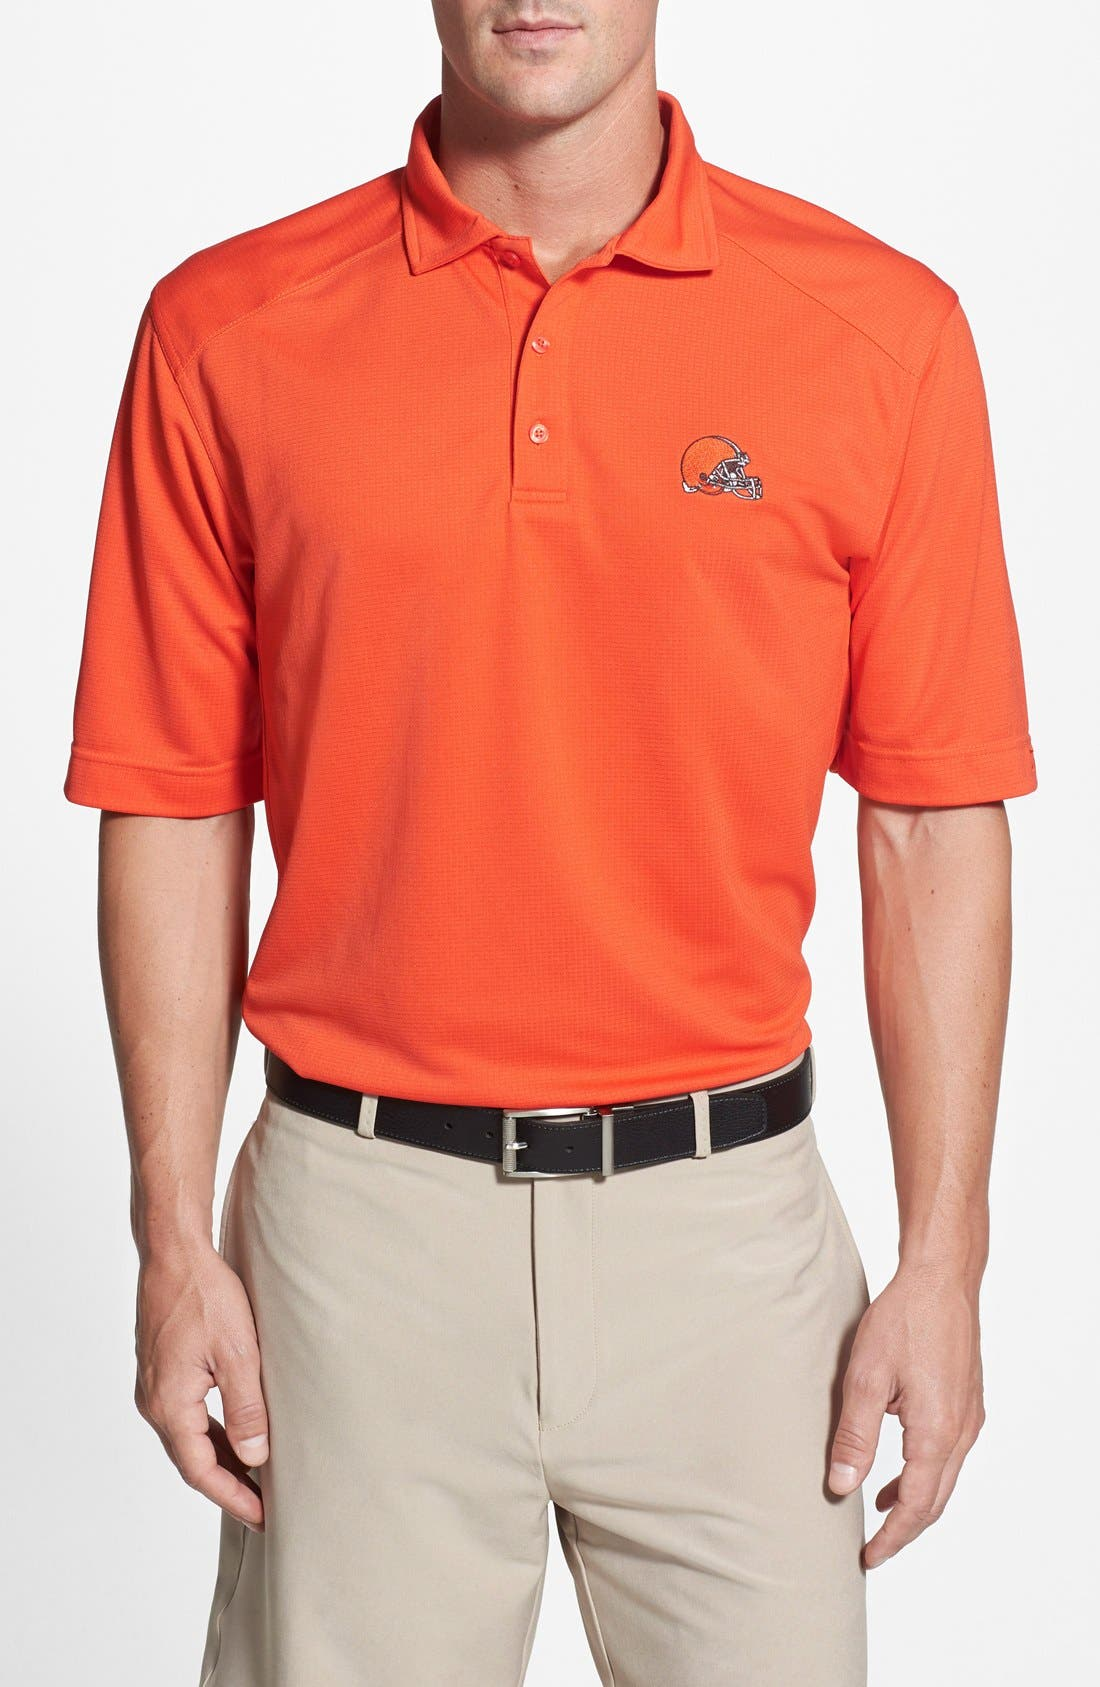 Cleveland Browns - Genre DryTec Moisture Wicking Polo,                         Main,                         color, 820